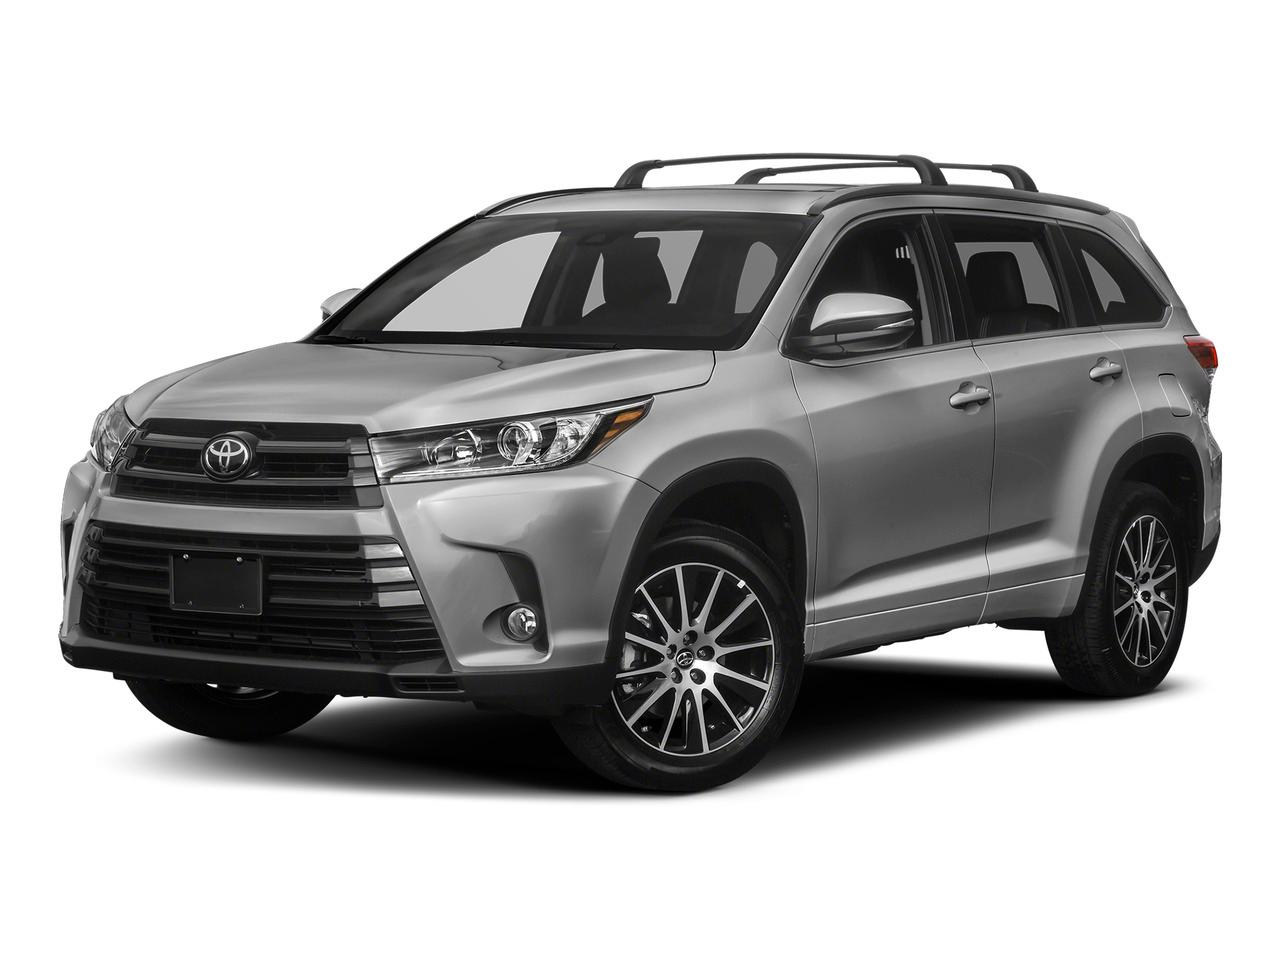 2017 Toyota Highlander Vehicle Photo in Rockville, MD 20852